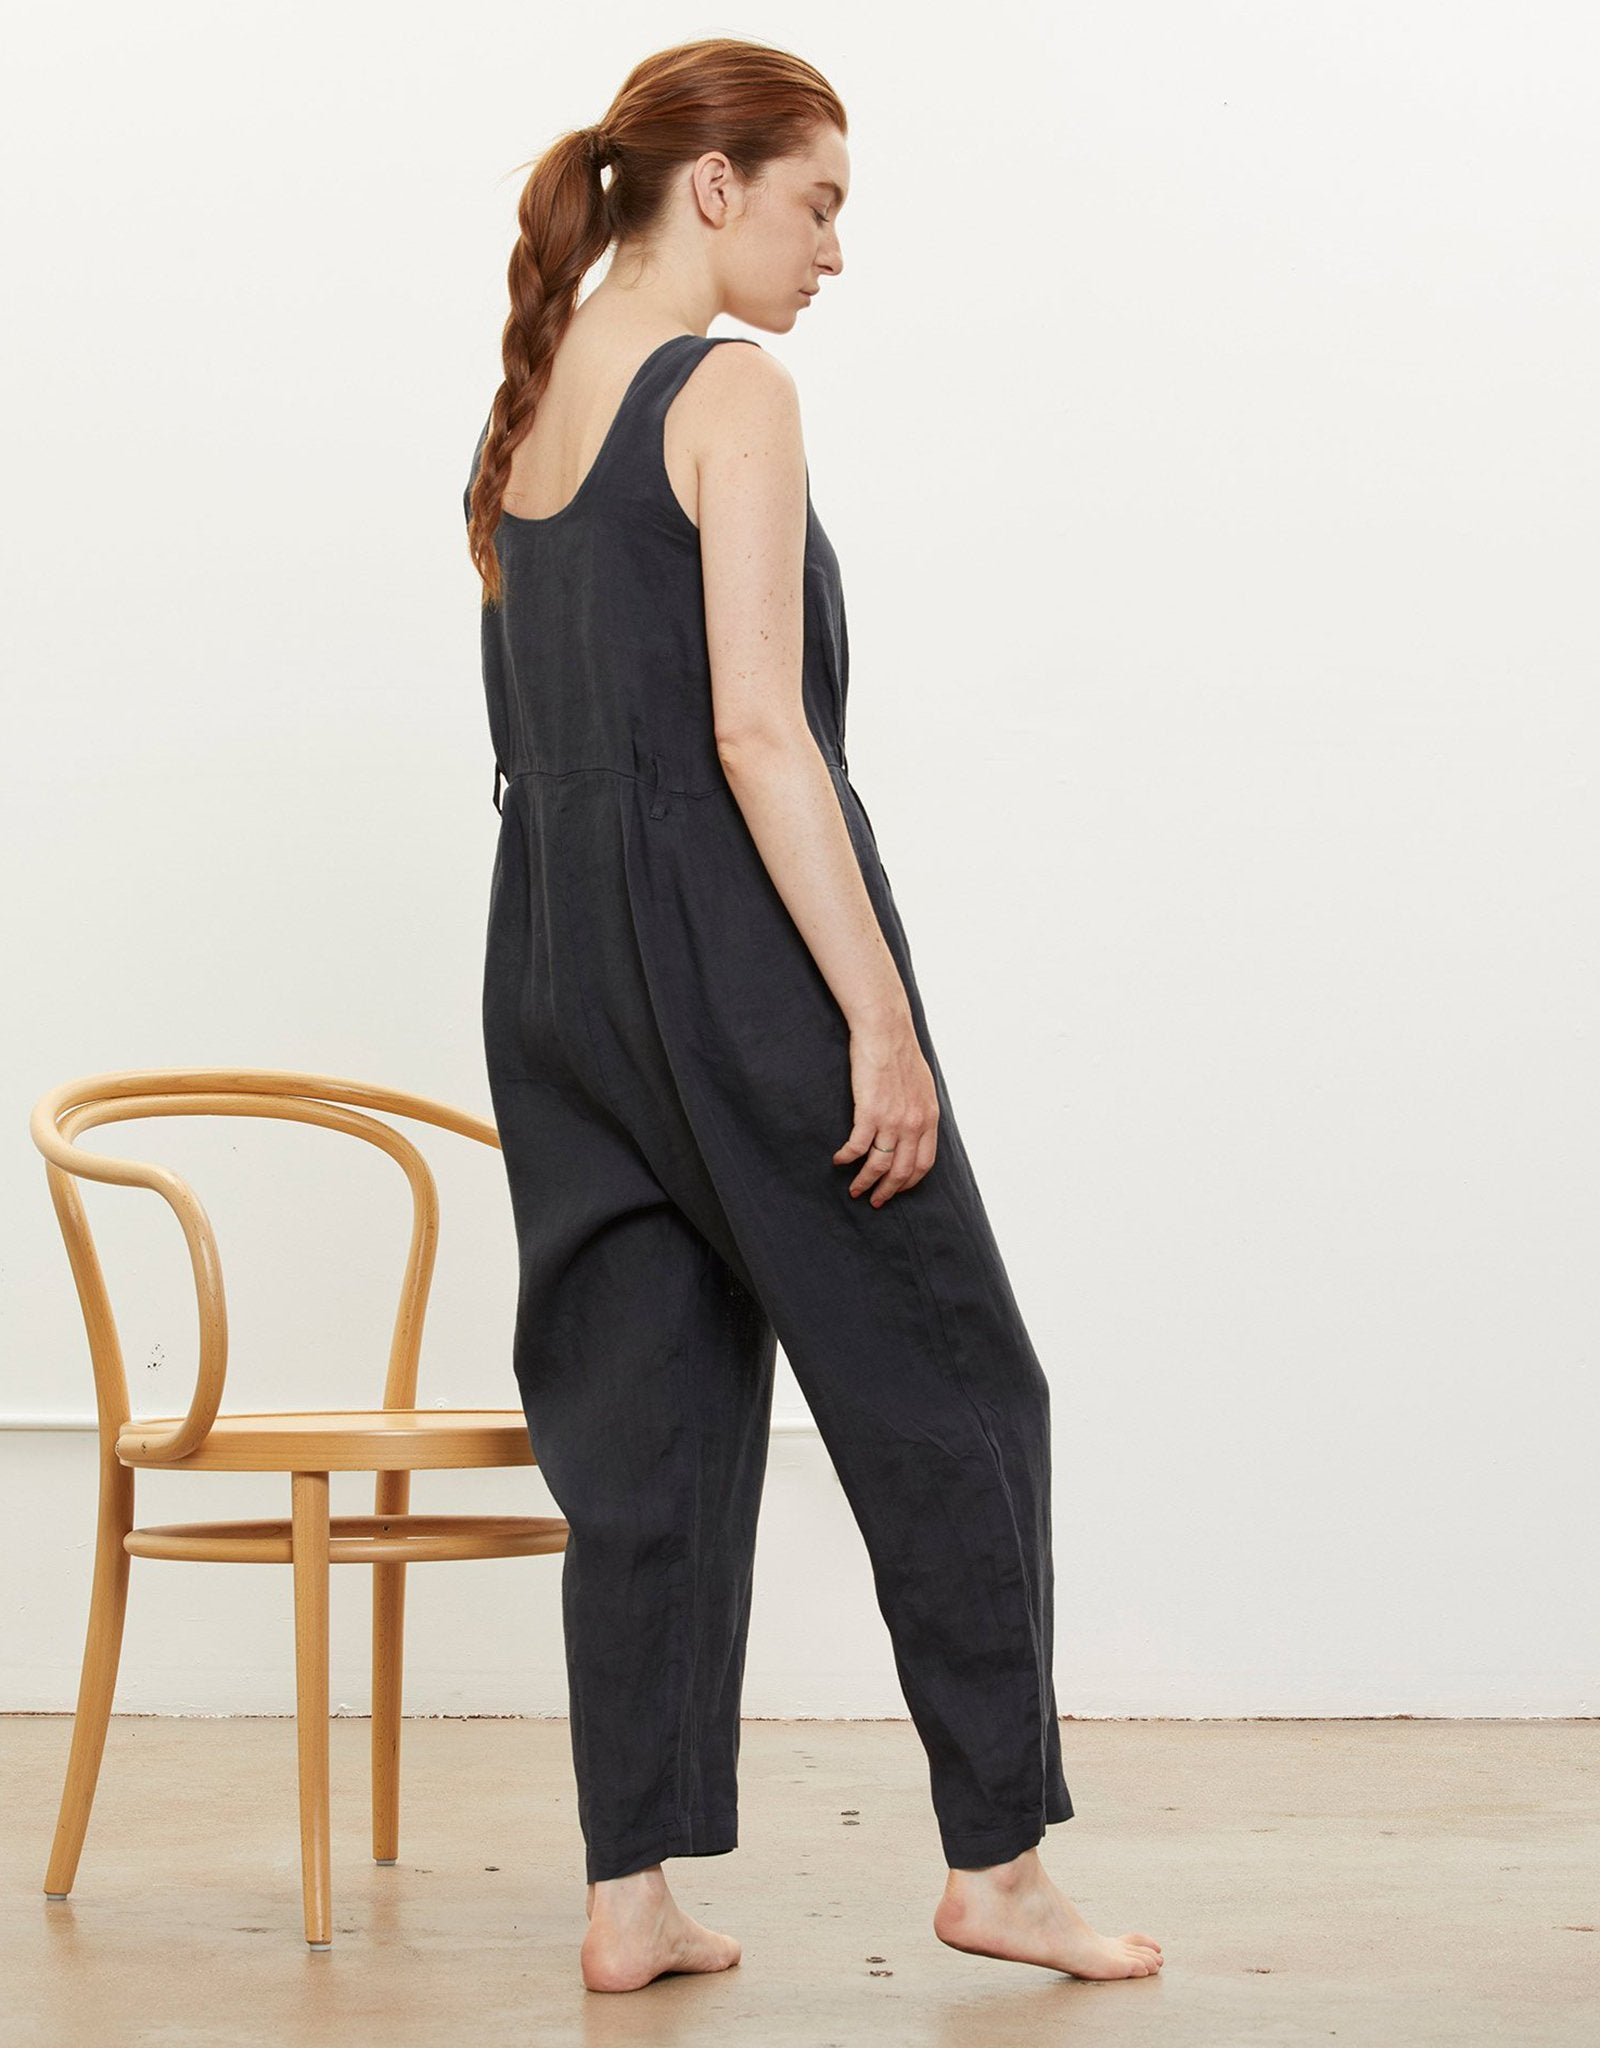 Model wears Black Crane Overall in Black from Shop FAWN